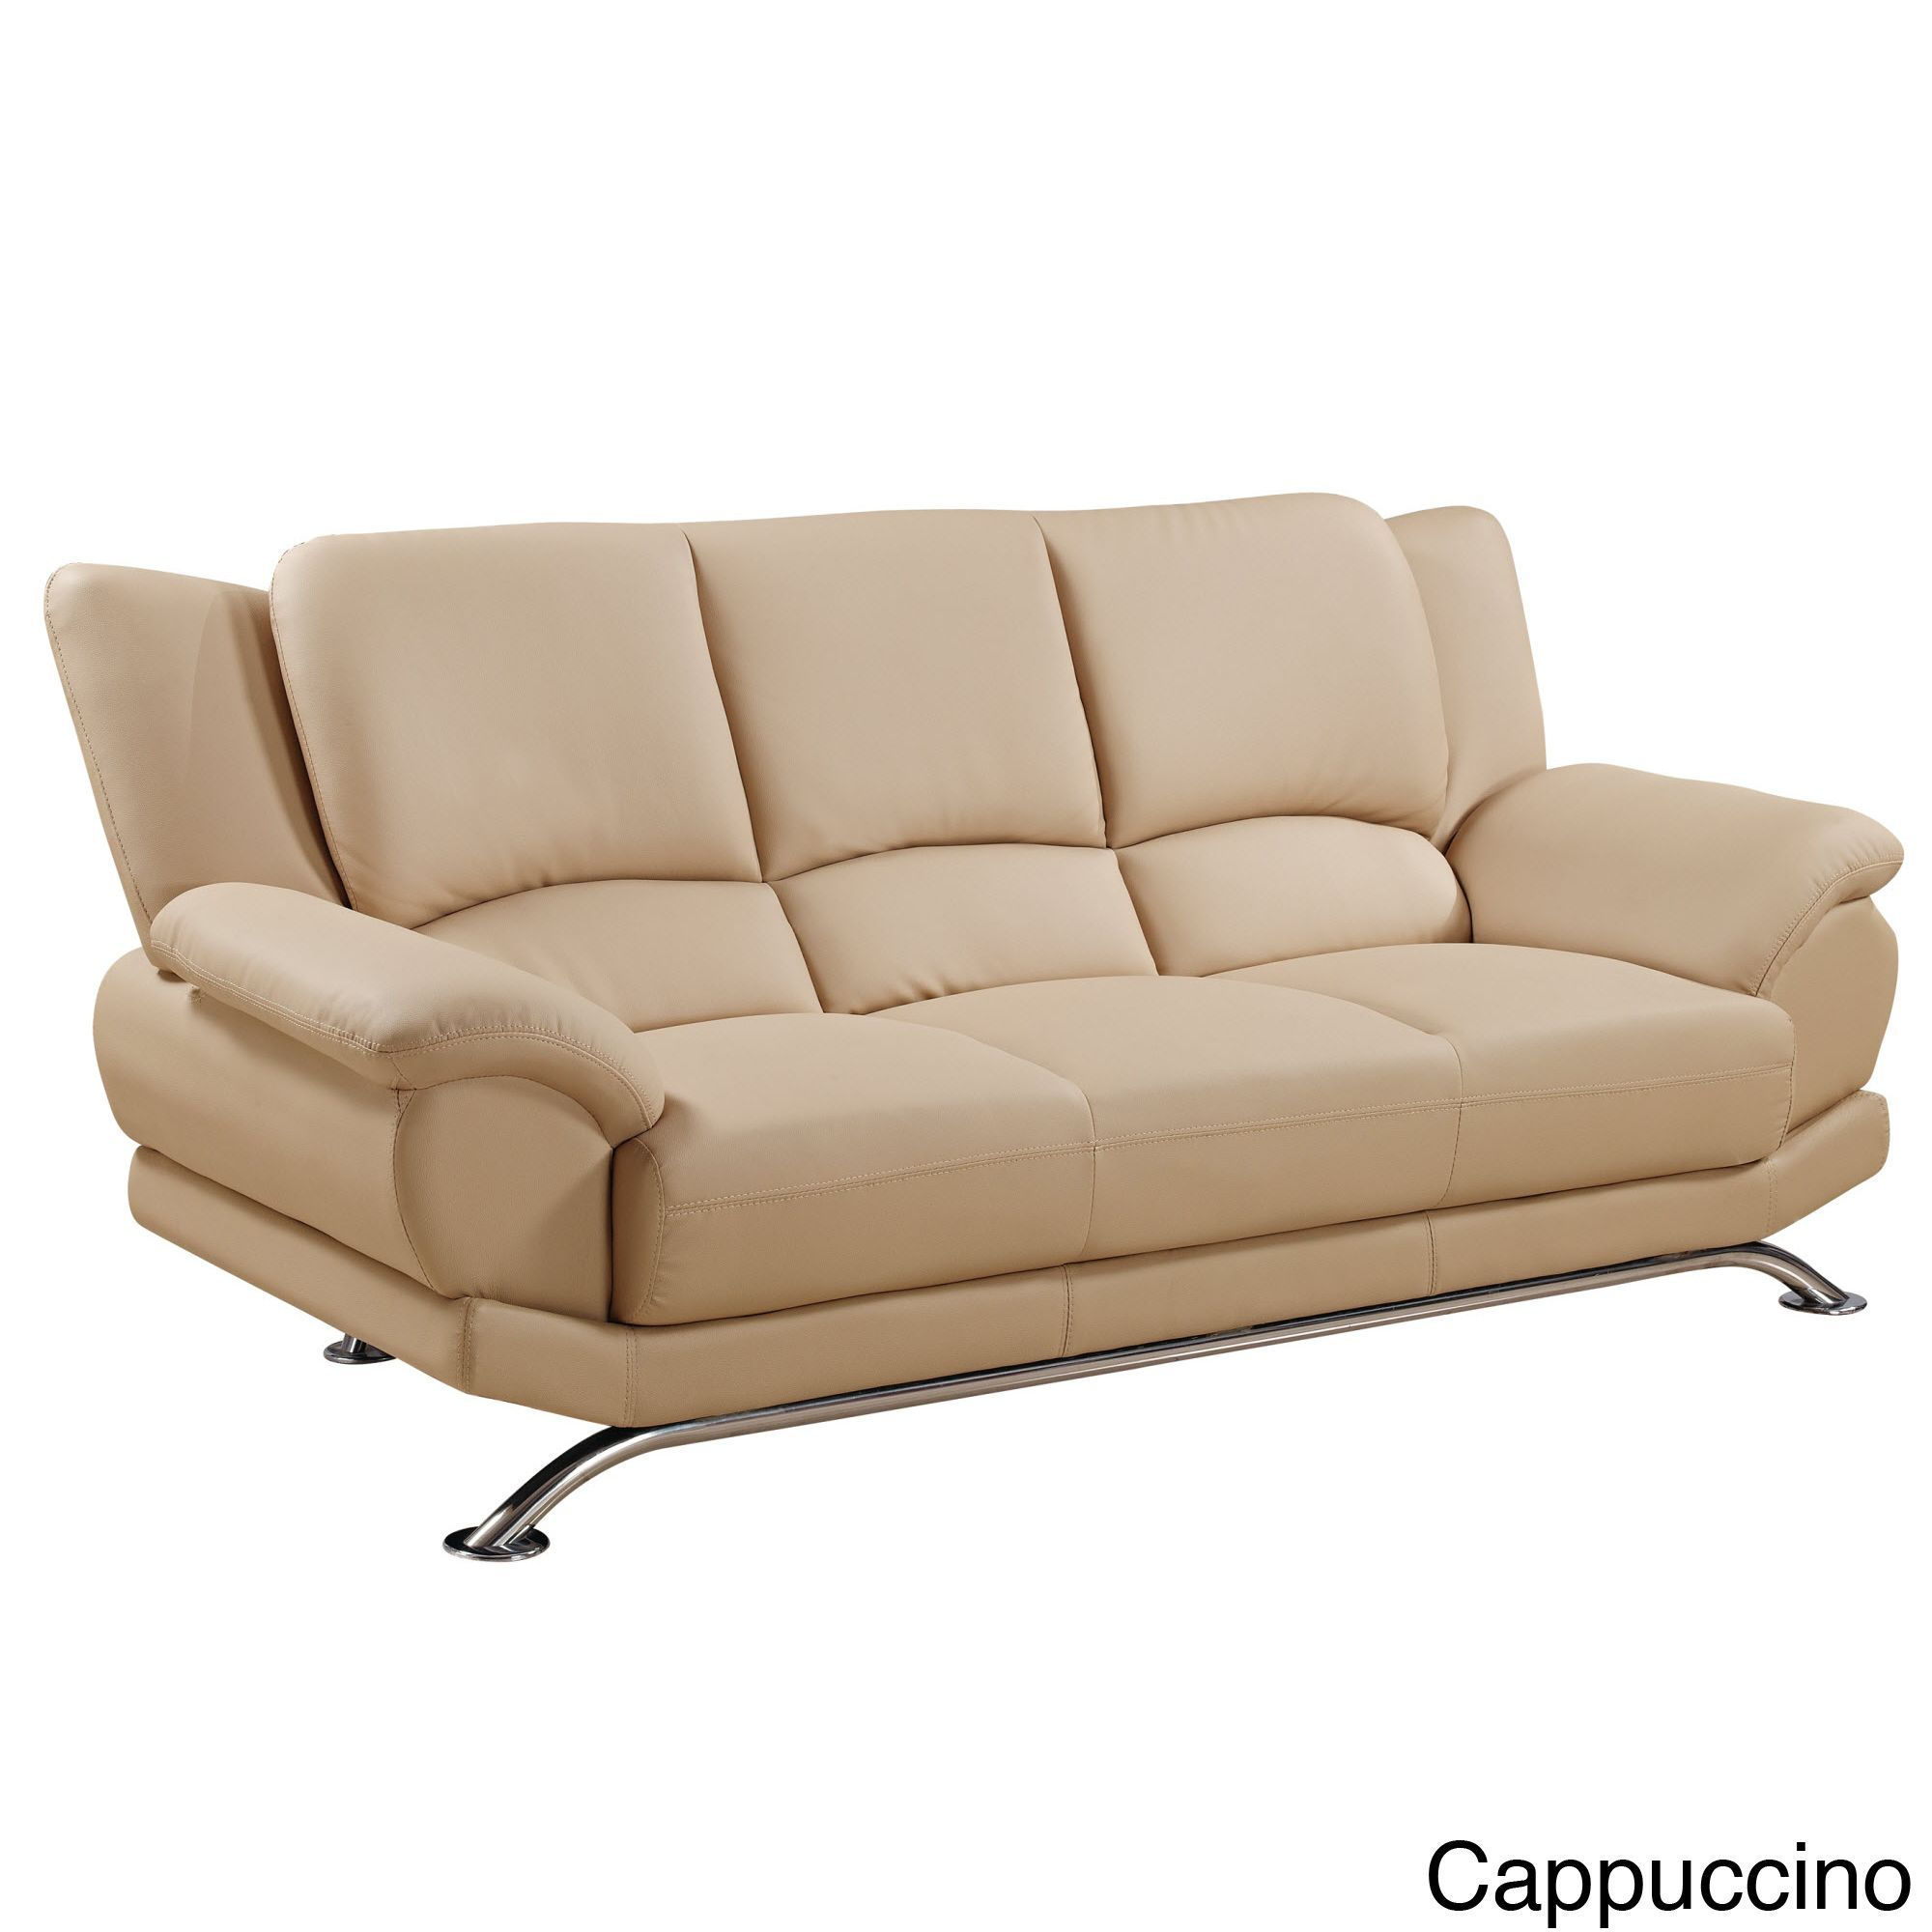 store of hotel furniture formidable full factory image family sofa city value home ideas houston in cocoa stores sofasofa atlanta harlem wi appleton outlet size liquidators